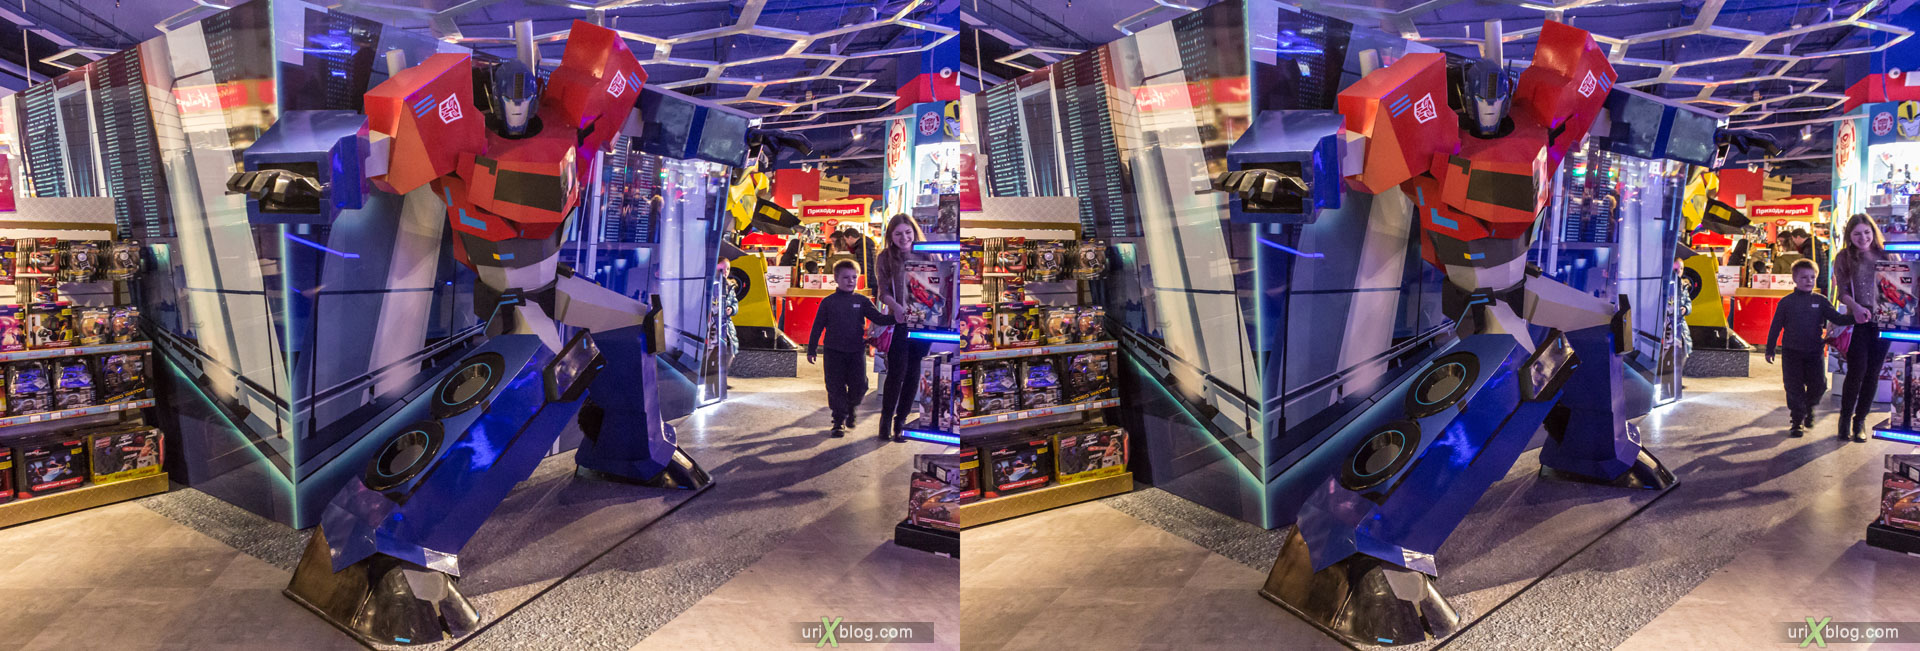 Optimus Prime, autobot, Hamleys-World, Central Childrens World, Shop, Store, Lubyanskaya square, Moscow, Russia, 3D, stereo pair, cross-eyed, crossview, cross view stereo pair, stereoscopic, 2015